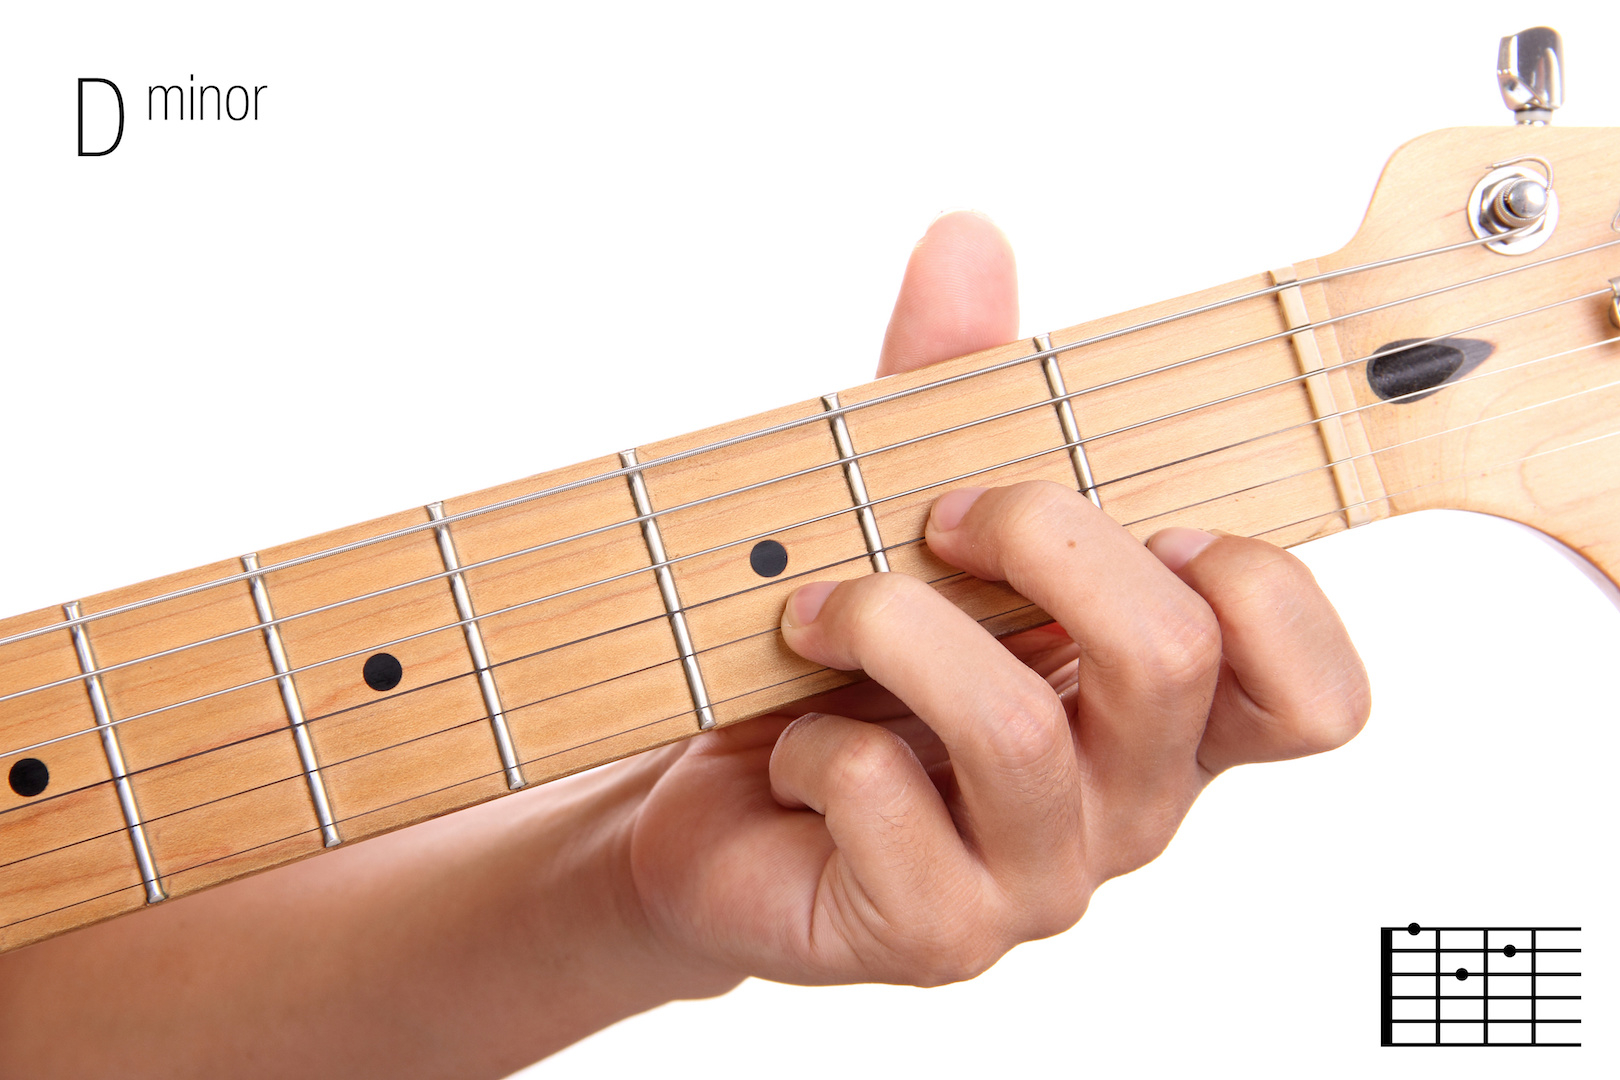 E Minor Chord D Minor Chord On Guitar Scale Popular Songs Videos